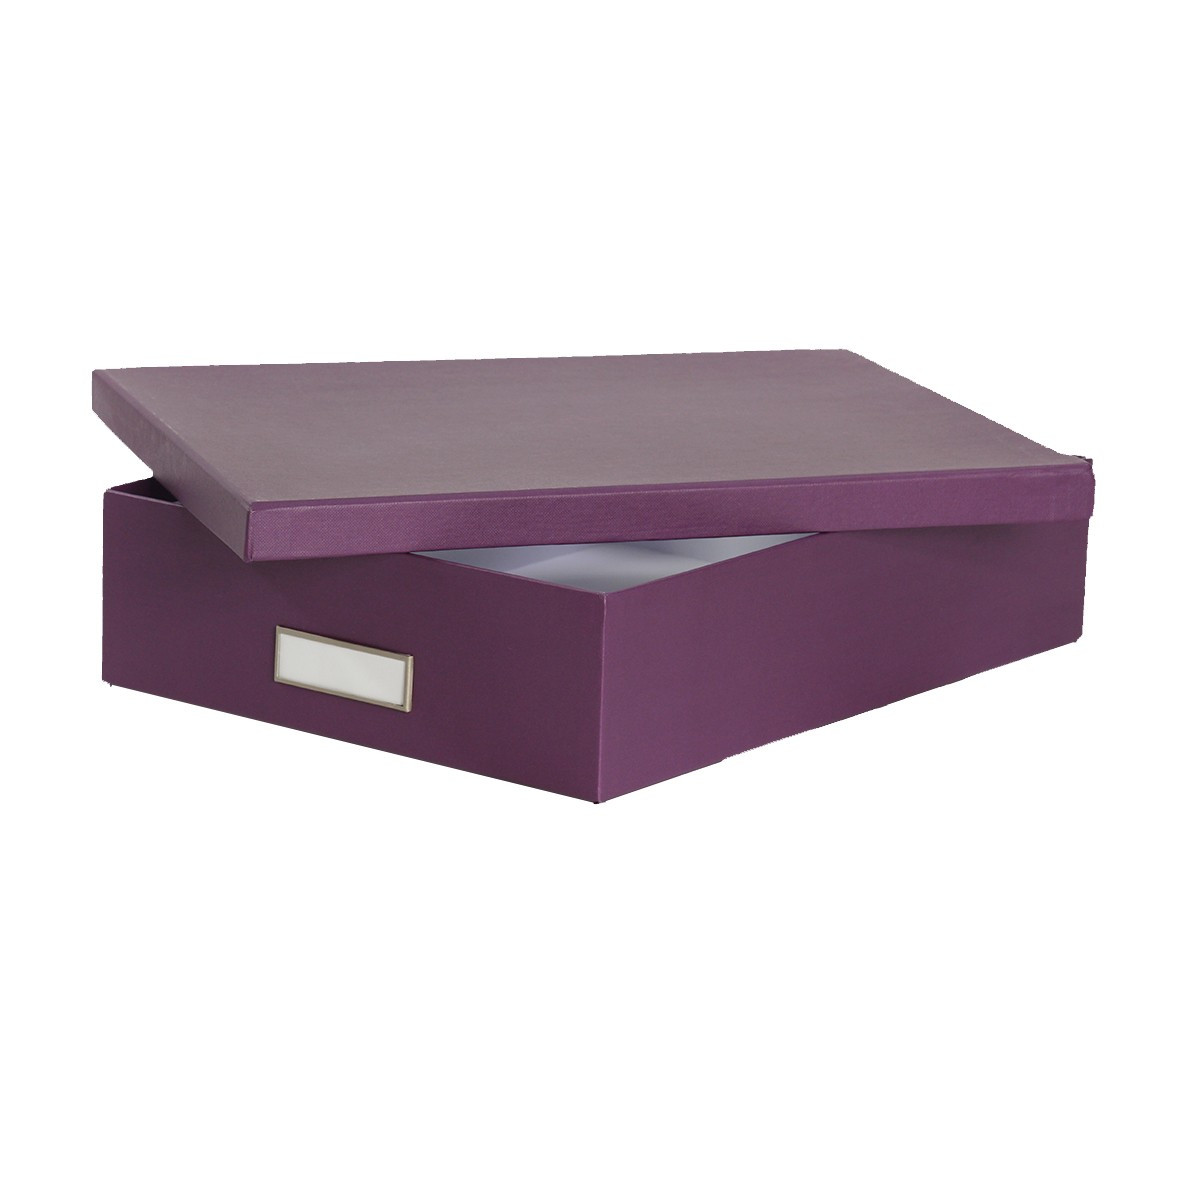 bo te de classement a4 en carton violet rangement bureau. Black Bedroom Furniture Sets. Home Design Ideas